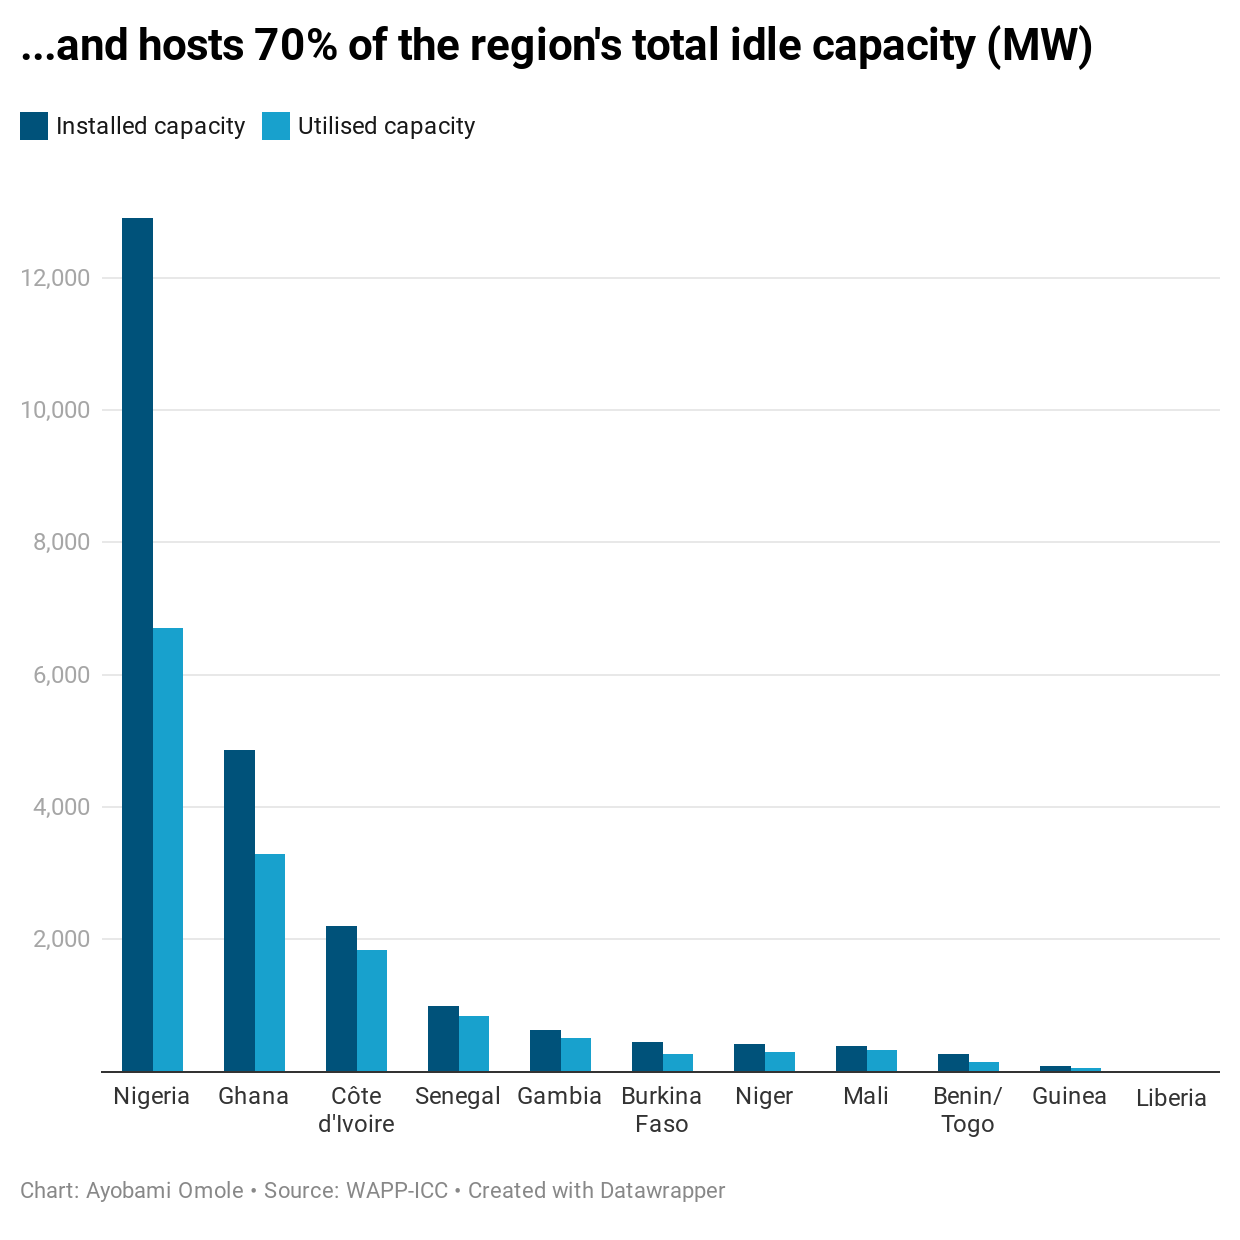 ...and hosts 70% of the region's total idle capacity (MW)